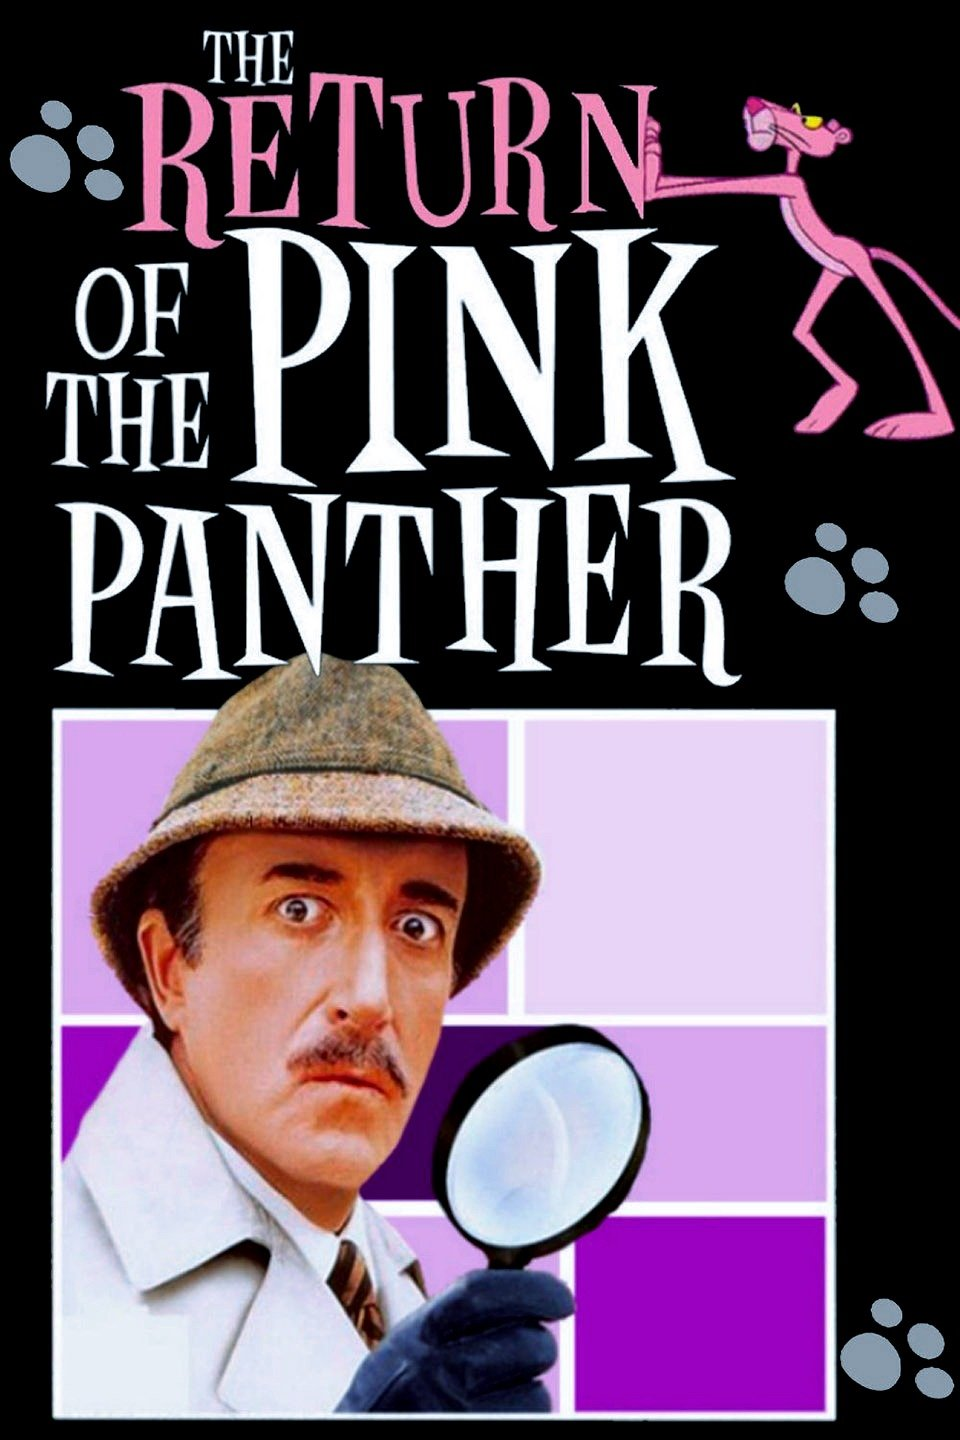 The Return of the Pink Panther (1975)